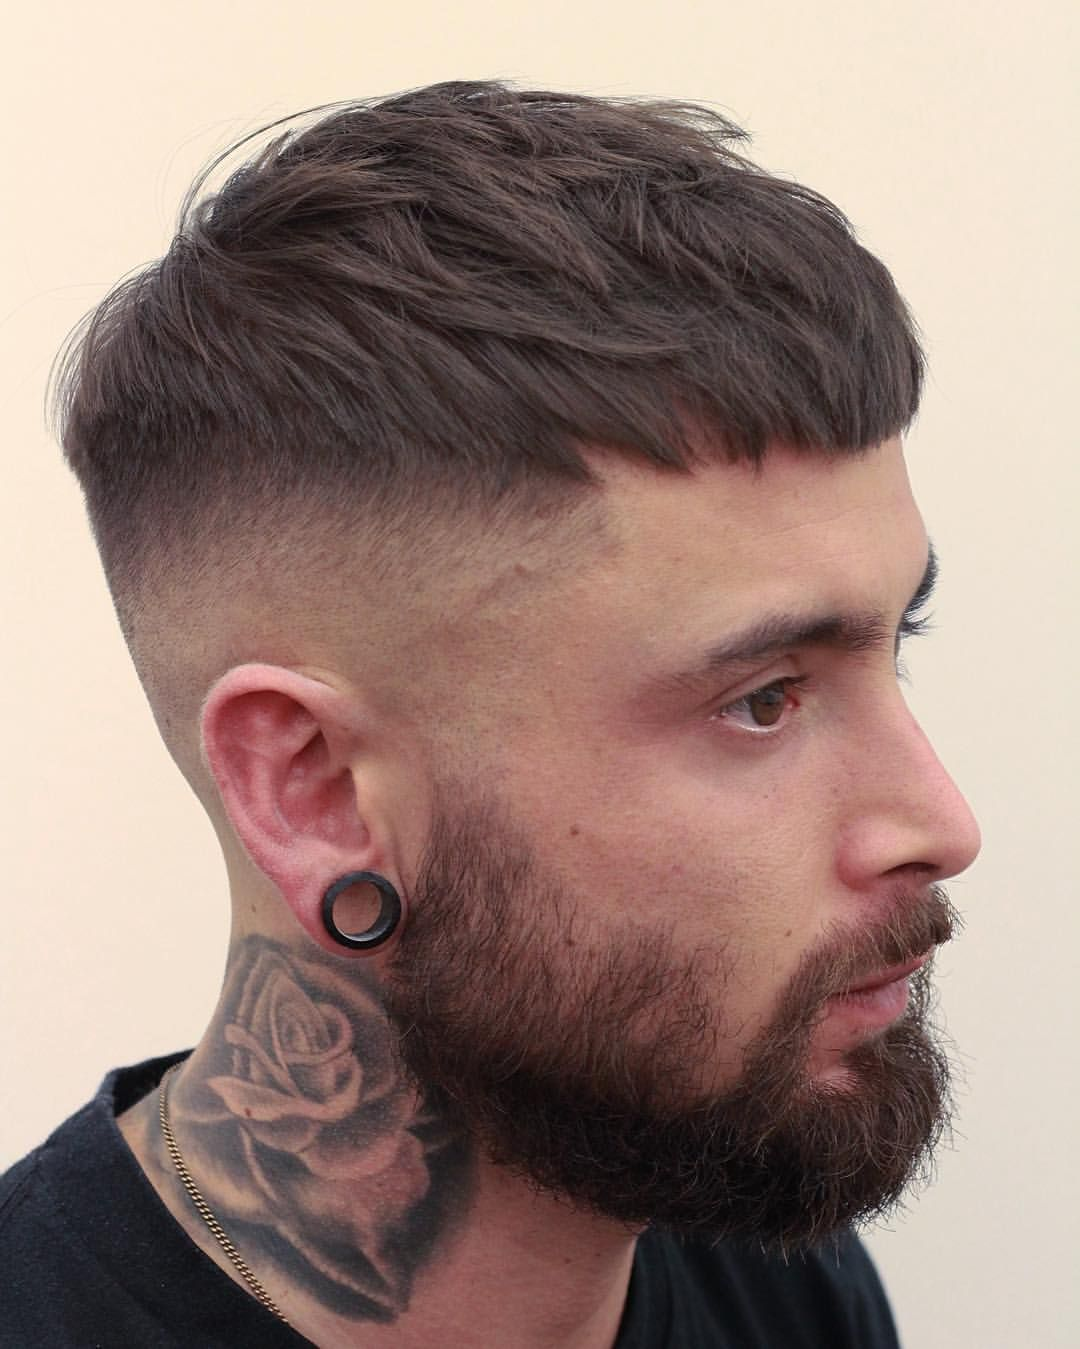 Pin By Josh Powell On Theshort In 2018 Pinterest Hair Hair Cuts